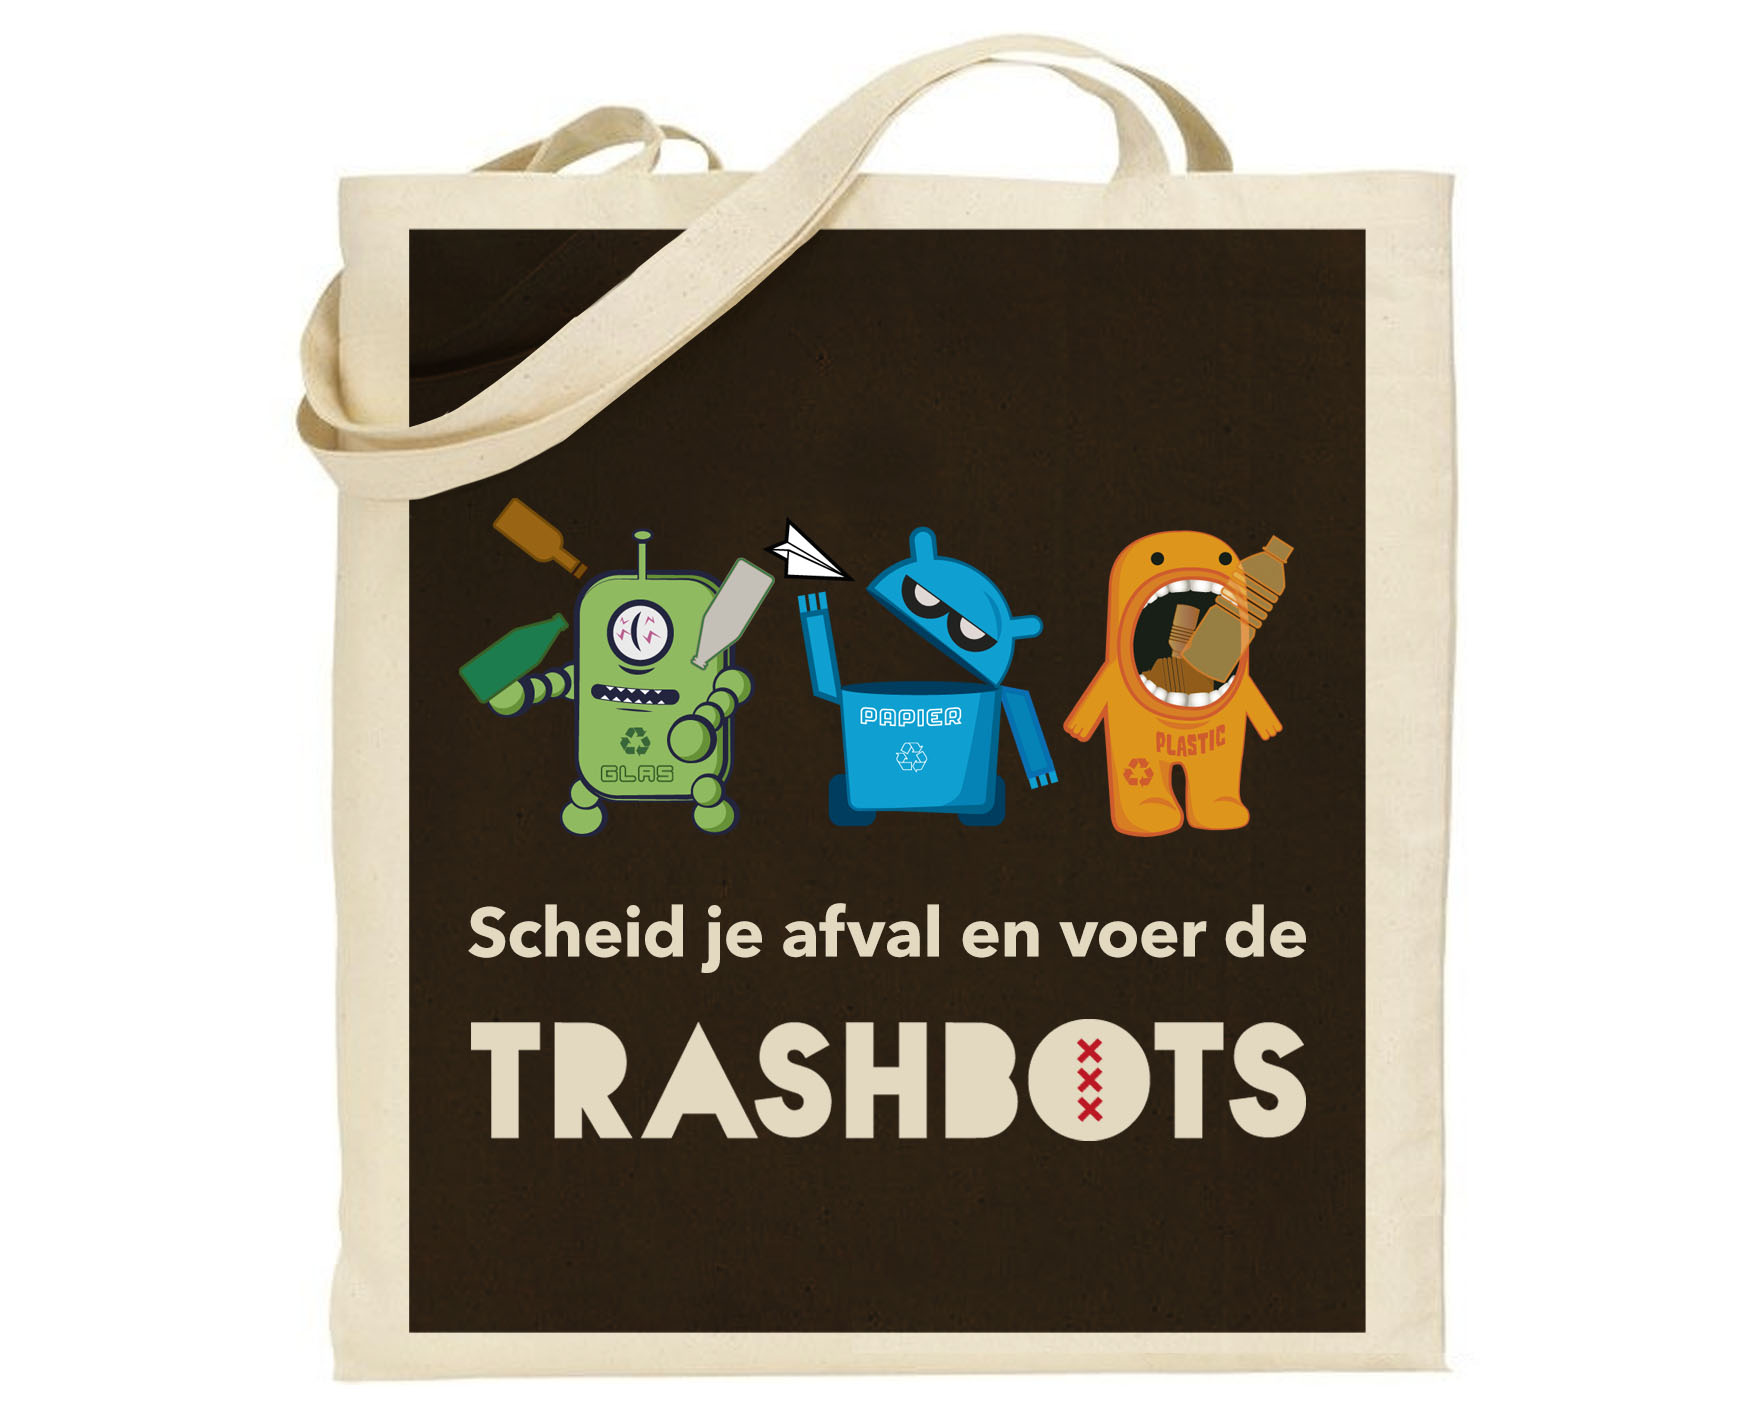 Trashbot Bag.jpg